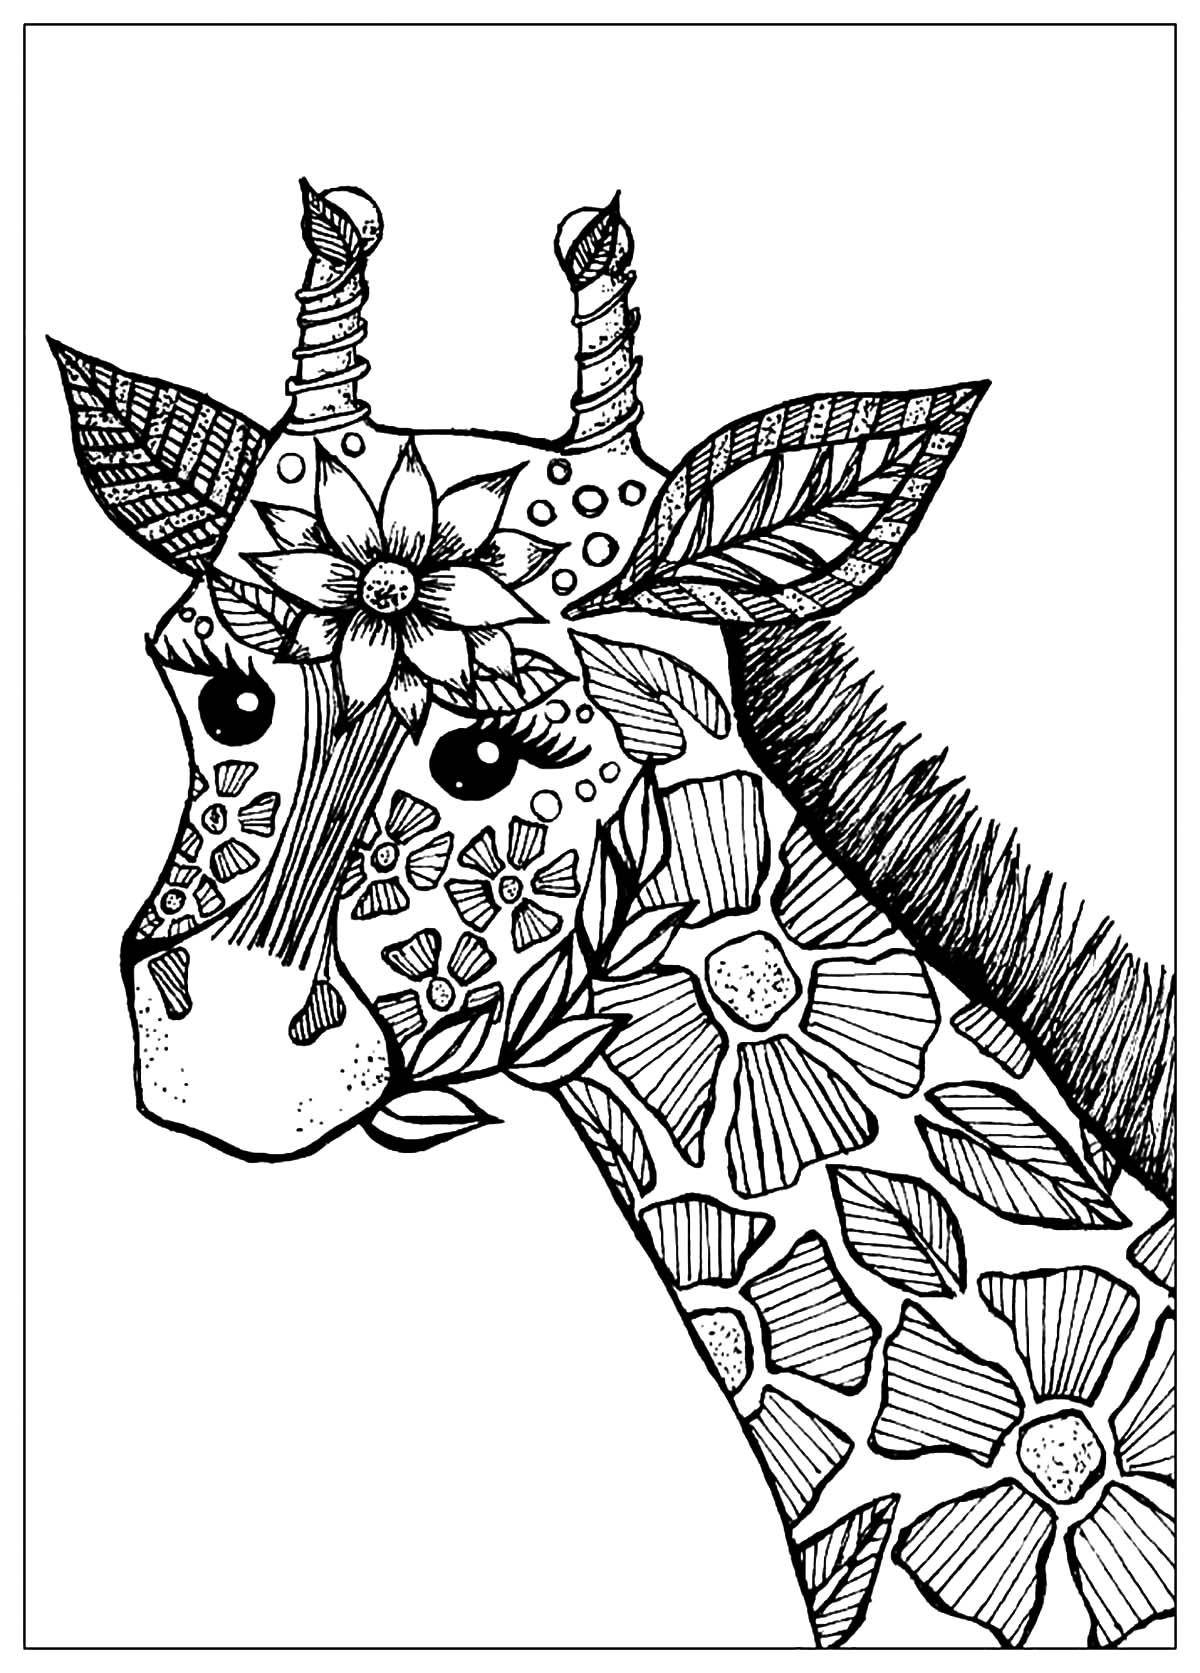 Giraffe Head With Flowers - Giraffes Adult Coloring Pages tout Dessin Girafe Simple